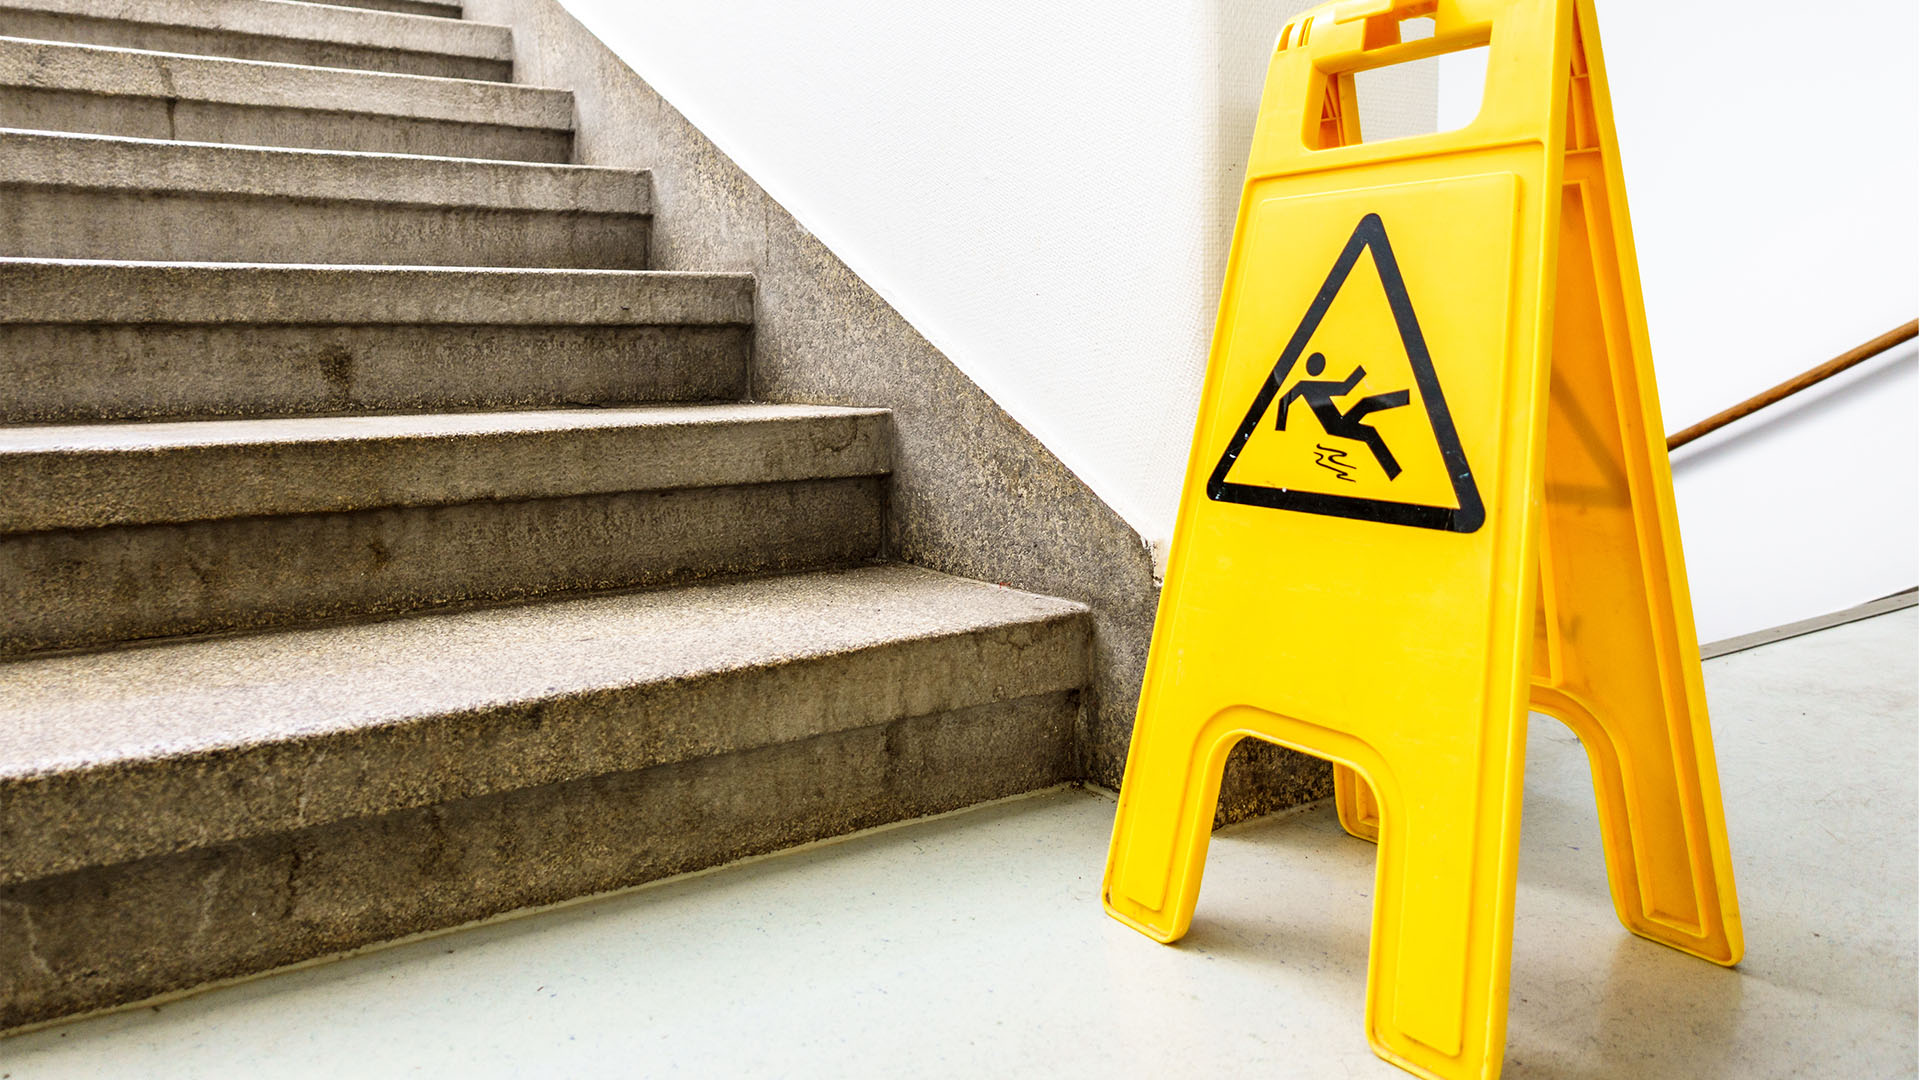 warning sign depicting a falling person placed at the bottom of staircase